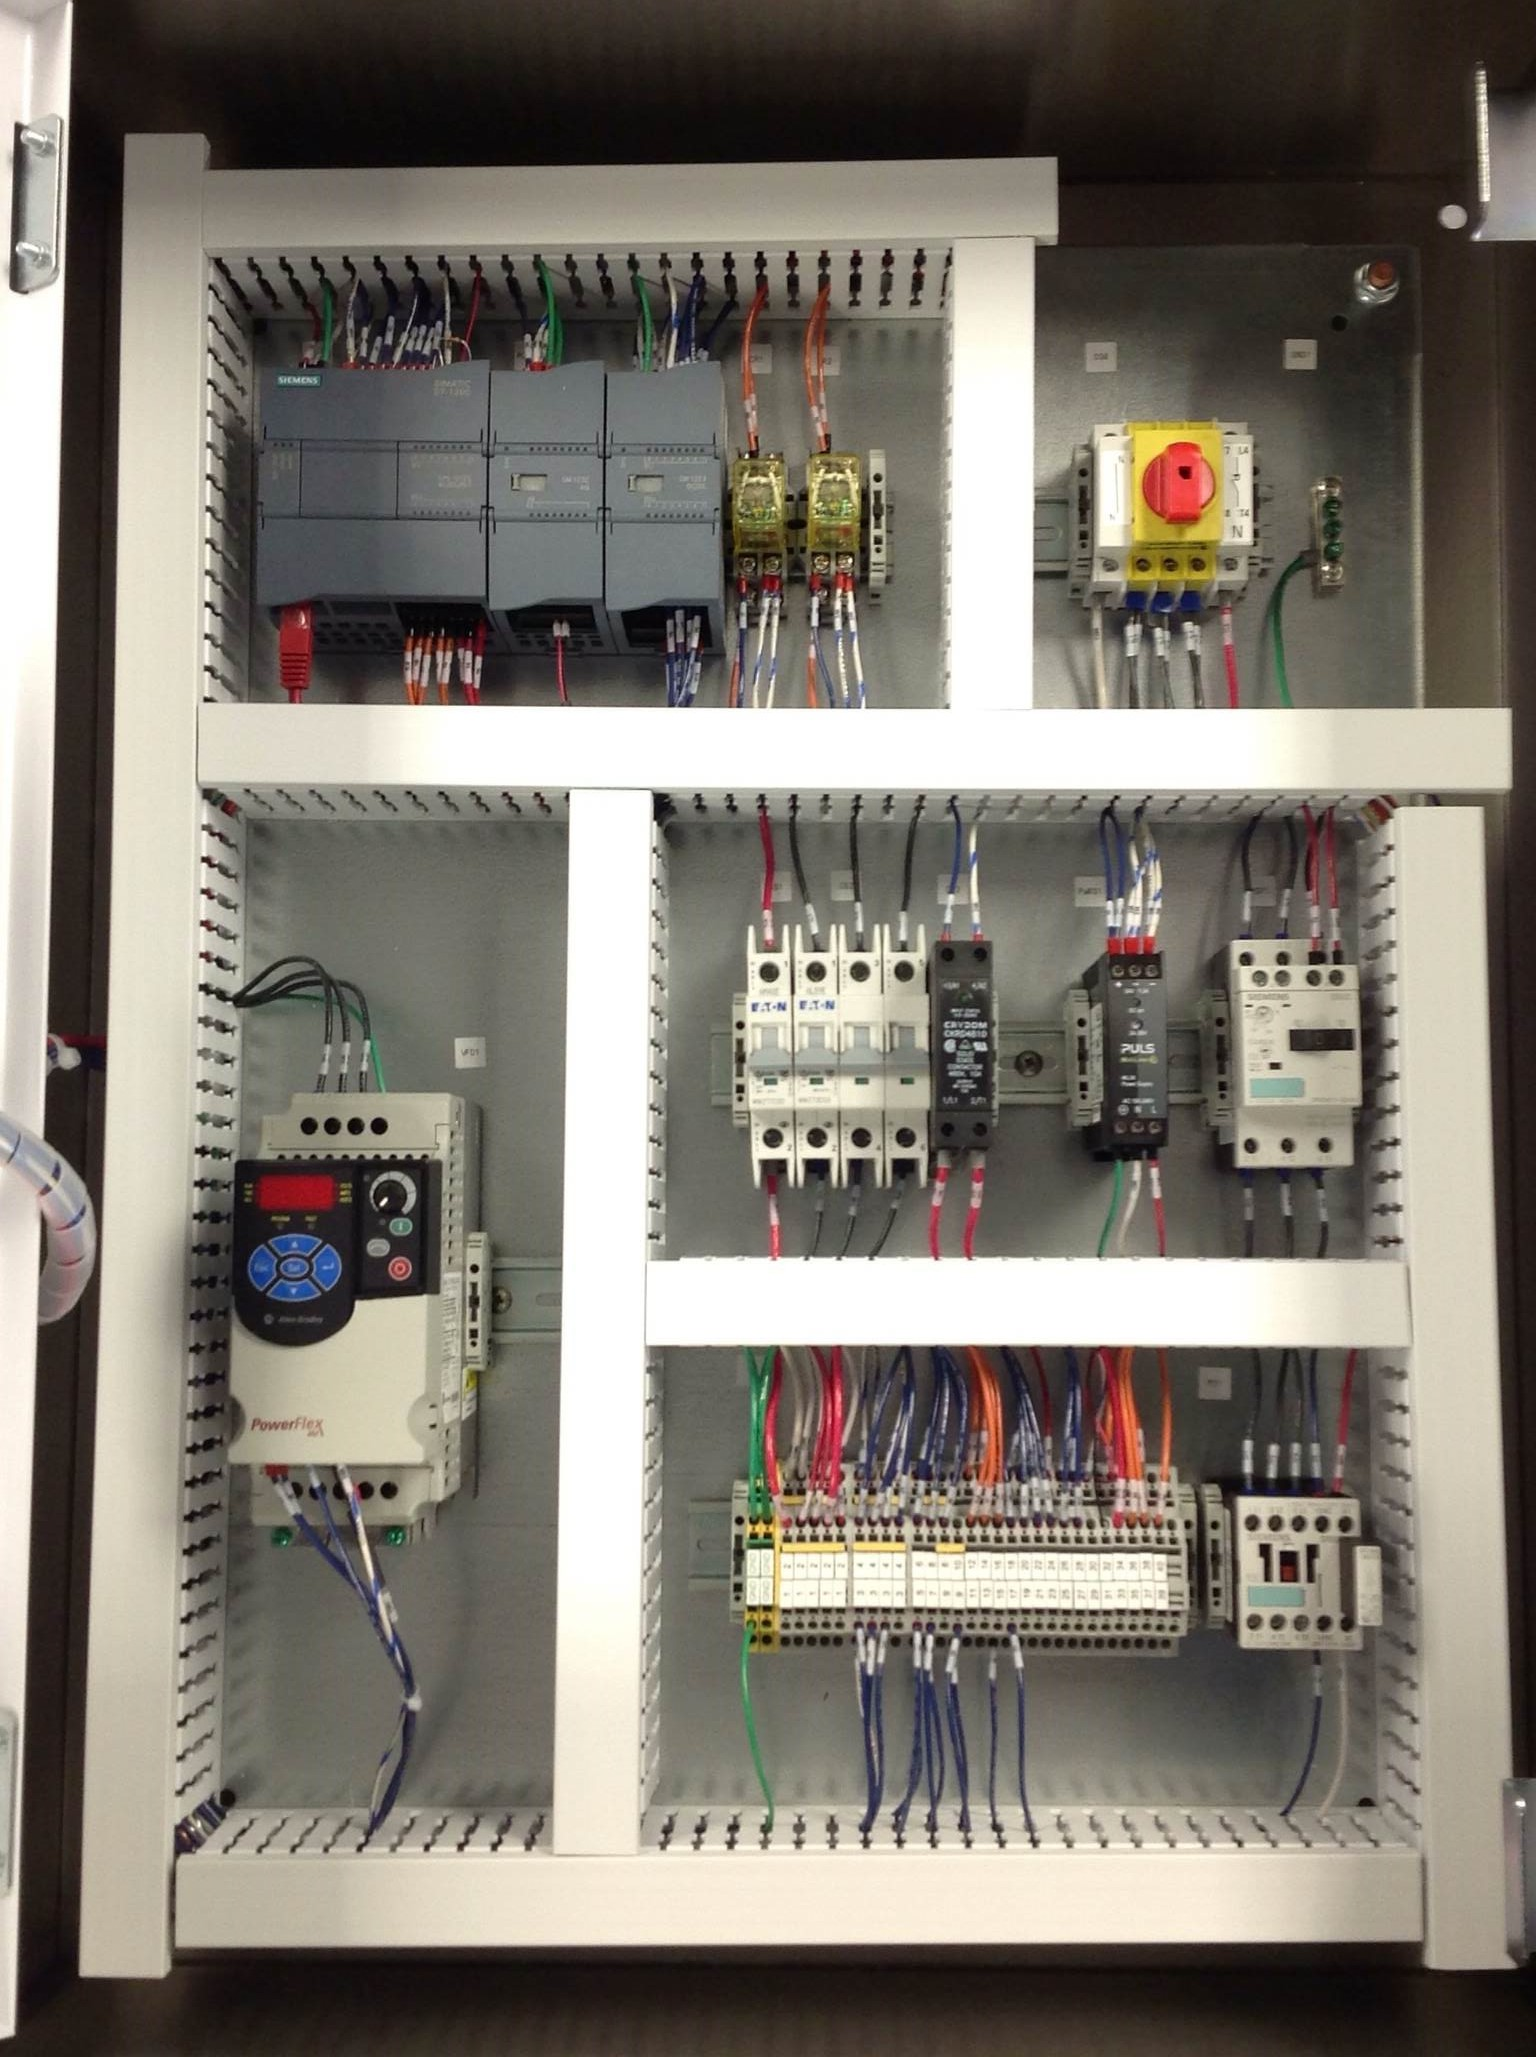 hight resolution of checking for non conformities on electrical panel